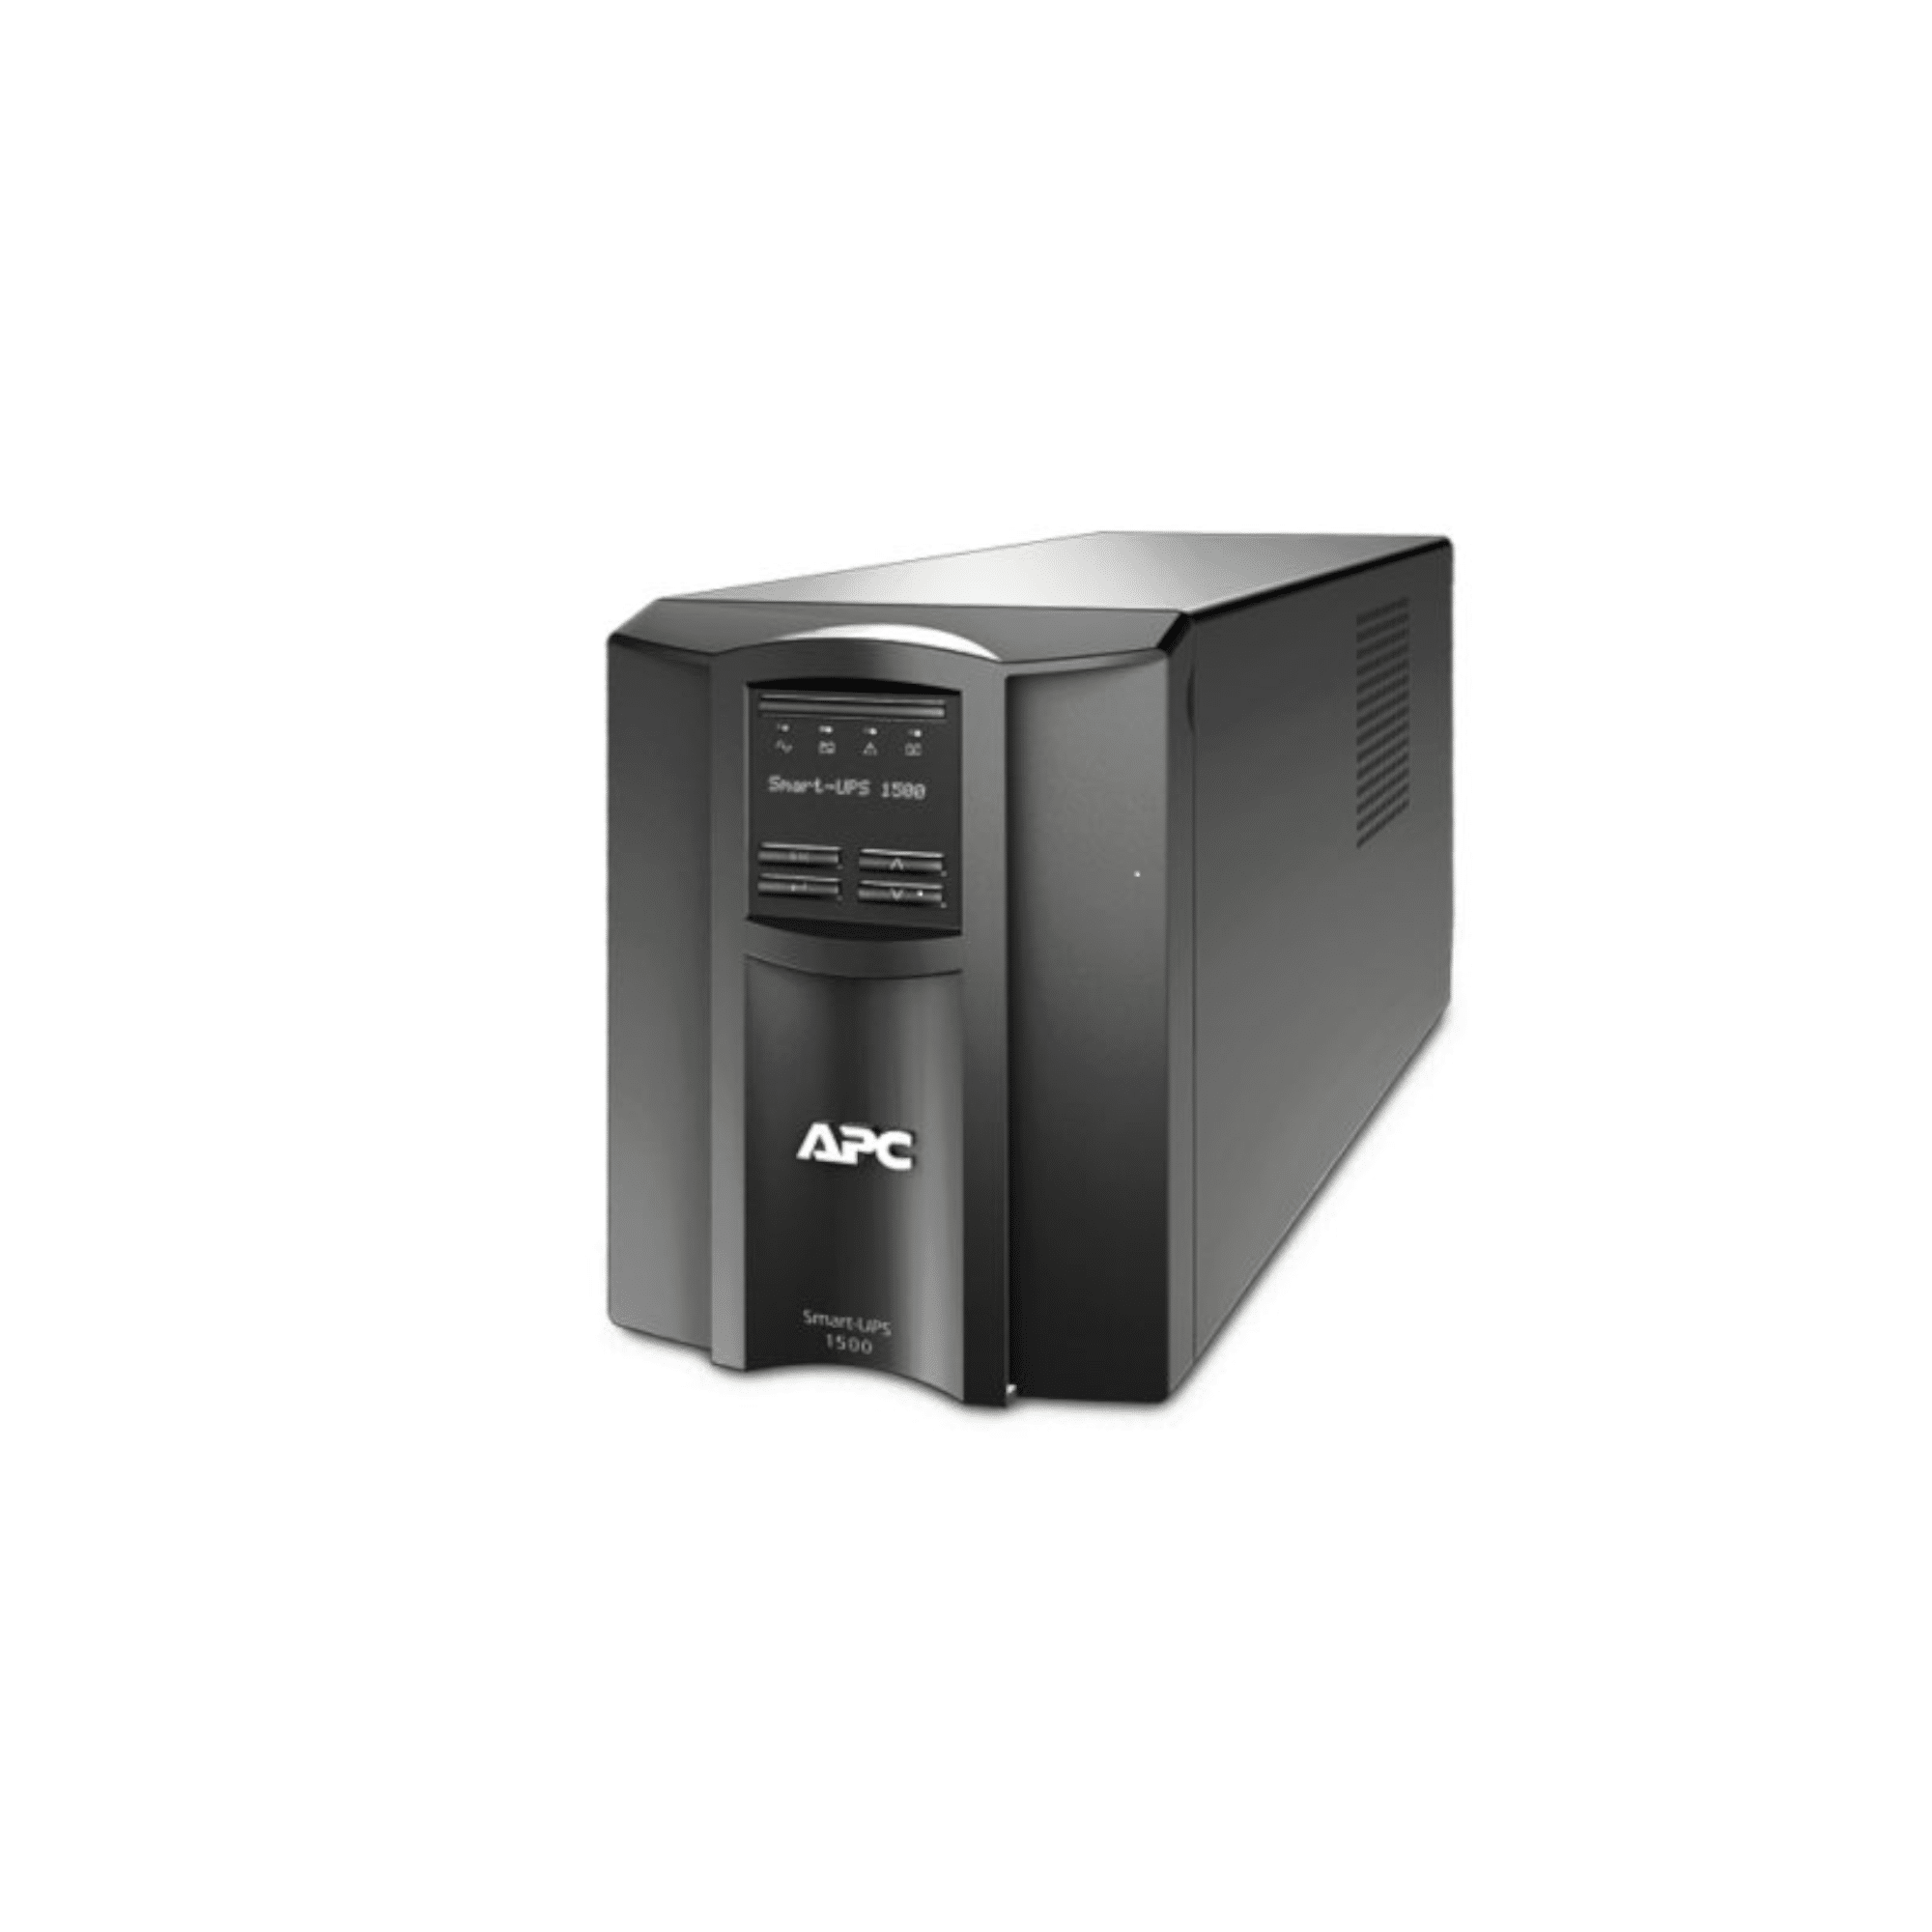 Uninterruptible Power Supply (UPS) Systems - Ecl-ips